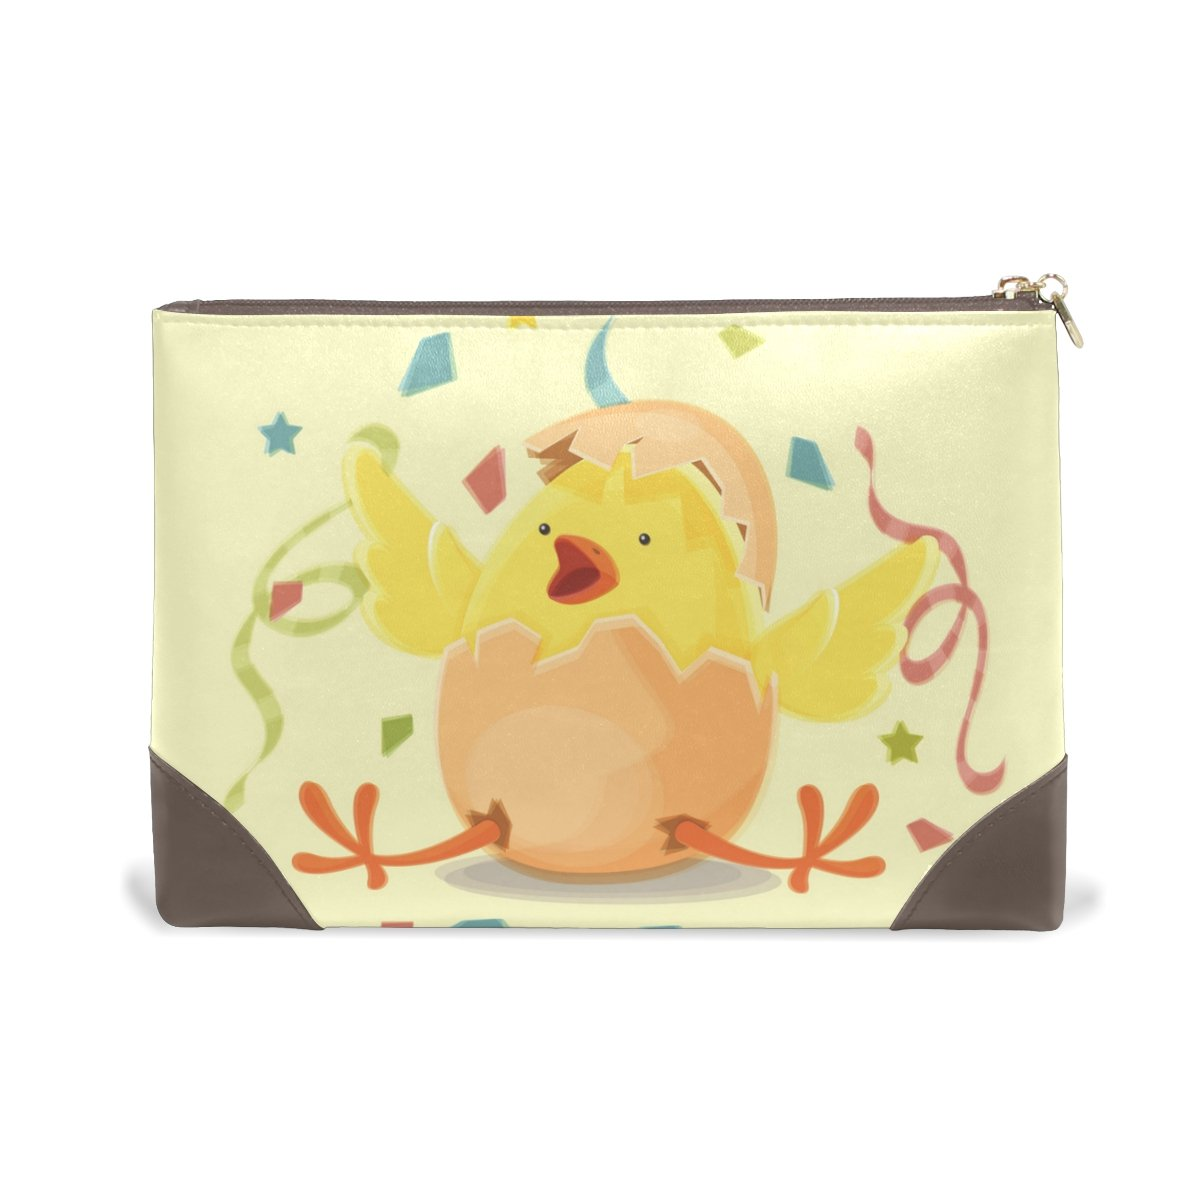 Women Makeup Bag Funny Chicken Latest item Genuine Zipper Cosmetics Free Shipping Cheap Bargain Gift Leather